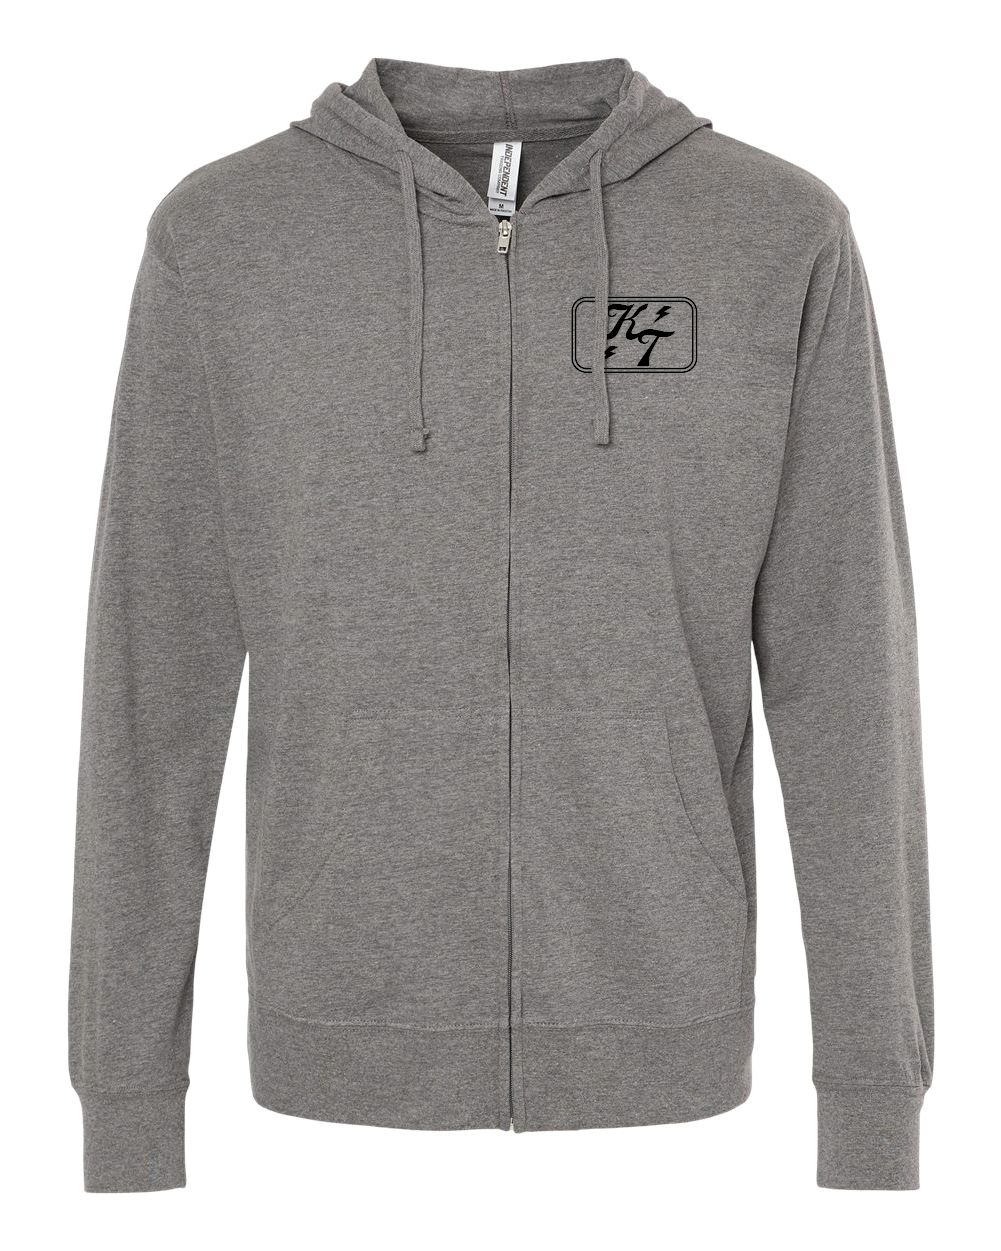 Homegrown Double Sided - Tee